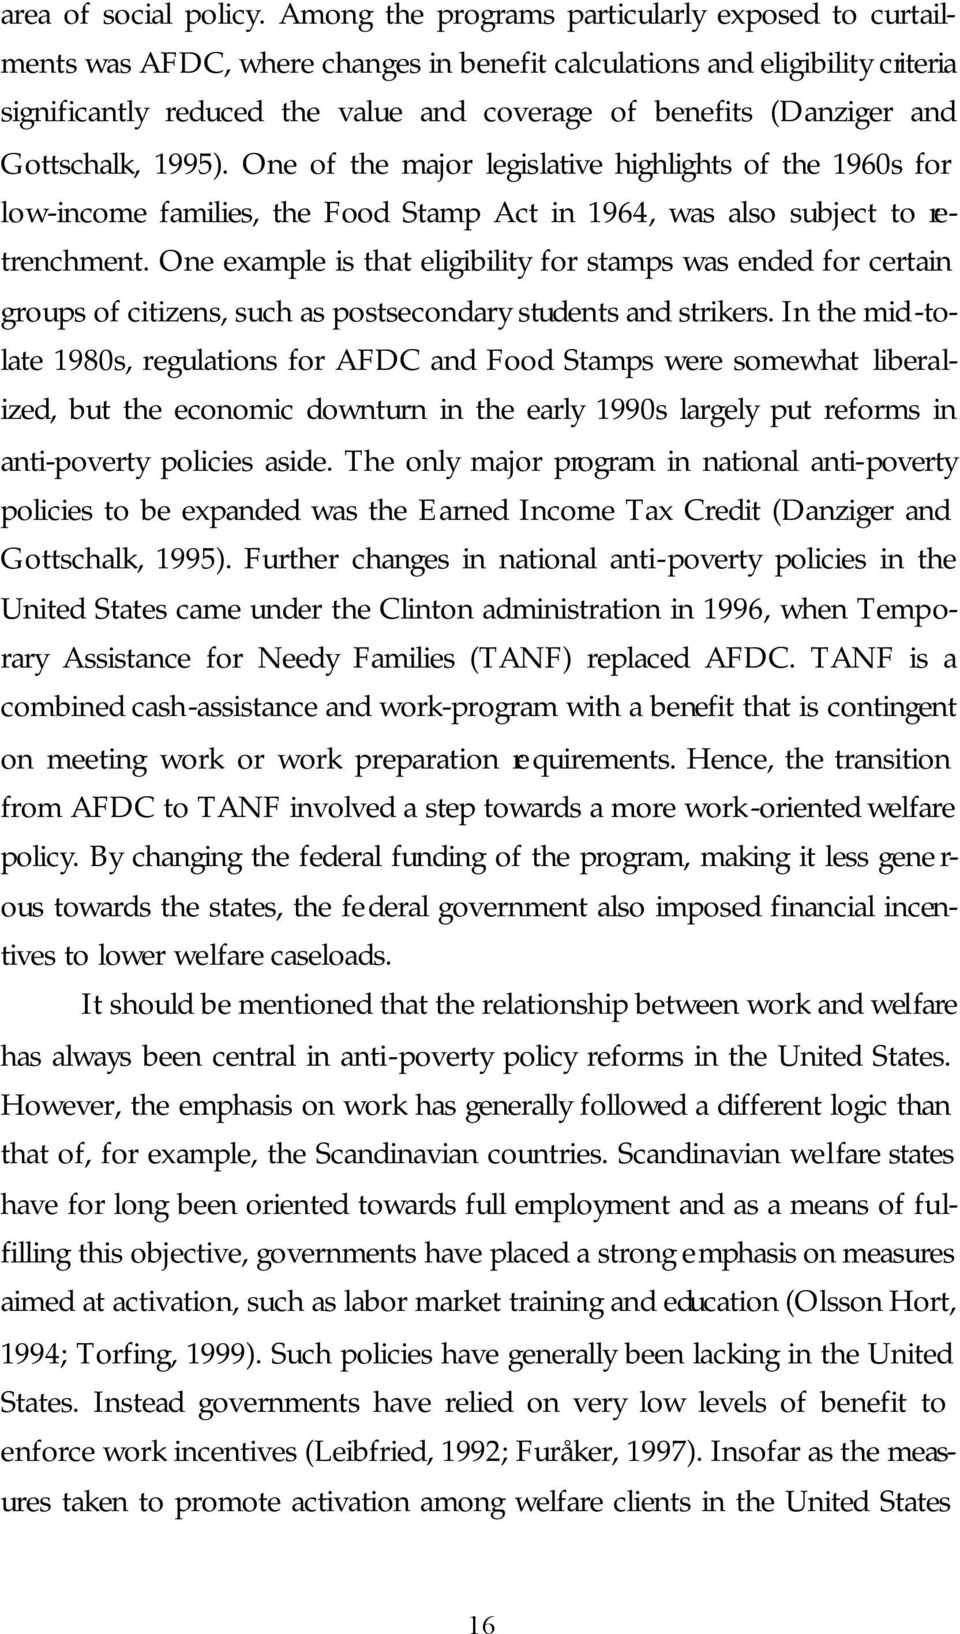 Gottschalk, 1995). One of the major legislative highlights of the 1960s for low-income families, the Food Stamp Act in 1964, was also subject to retrenchment.